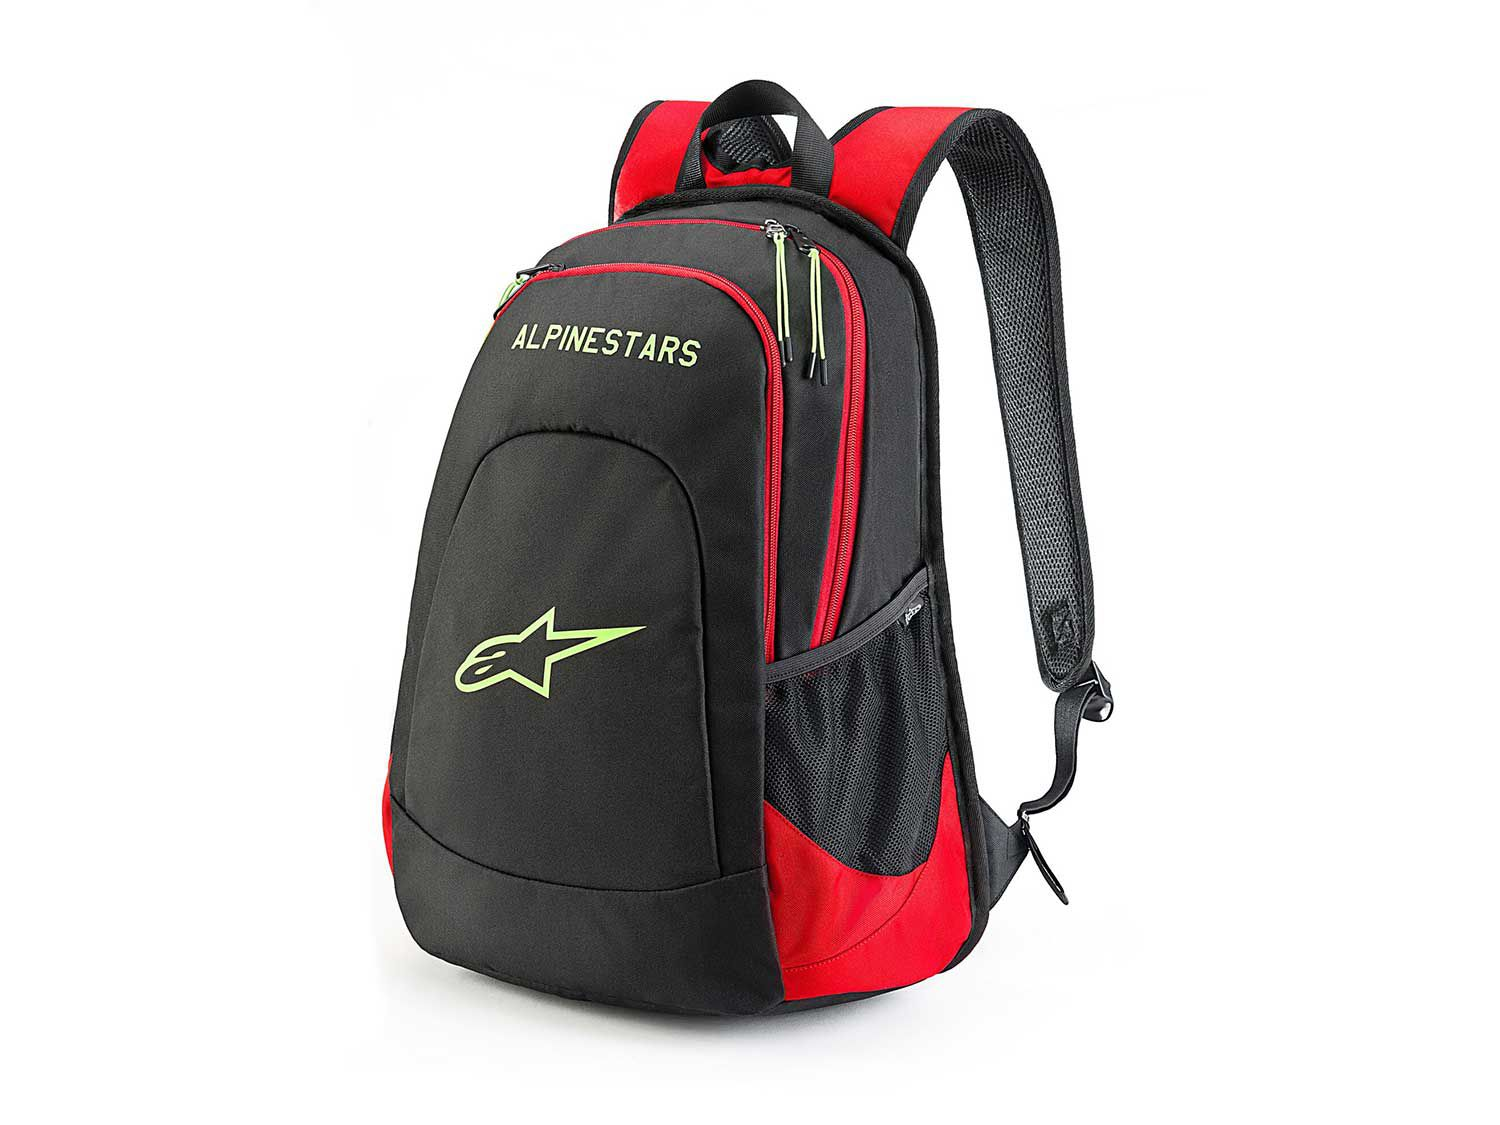 """The <a  href=""""https://www.amazon.com/ALPINESTARS-DEFCON-Backpack-black-White/dp/B07NGZYPZ4/ref=as_li_ss_tl?ie=UTF8&linkCode=sl1&tag=mcy01-20&linkId=76ab7ee71f2464a8133e394b4815d40f&language=en_US"""">Defcon Backpack</a> is better equipped for riding use thanks to its 600-denier polyester construction. It's also built with a laptop sleeve and internal organization pockets, has side mesh water bottle pockets, and a padded back panel and shoulder straps. It'll provide you with a total of 13.45 liters of carrying capacity."""